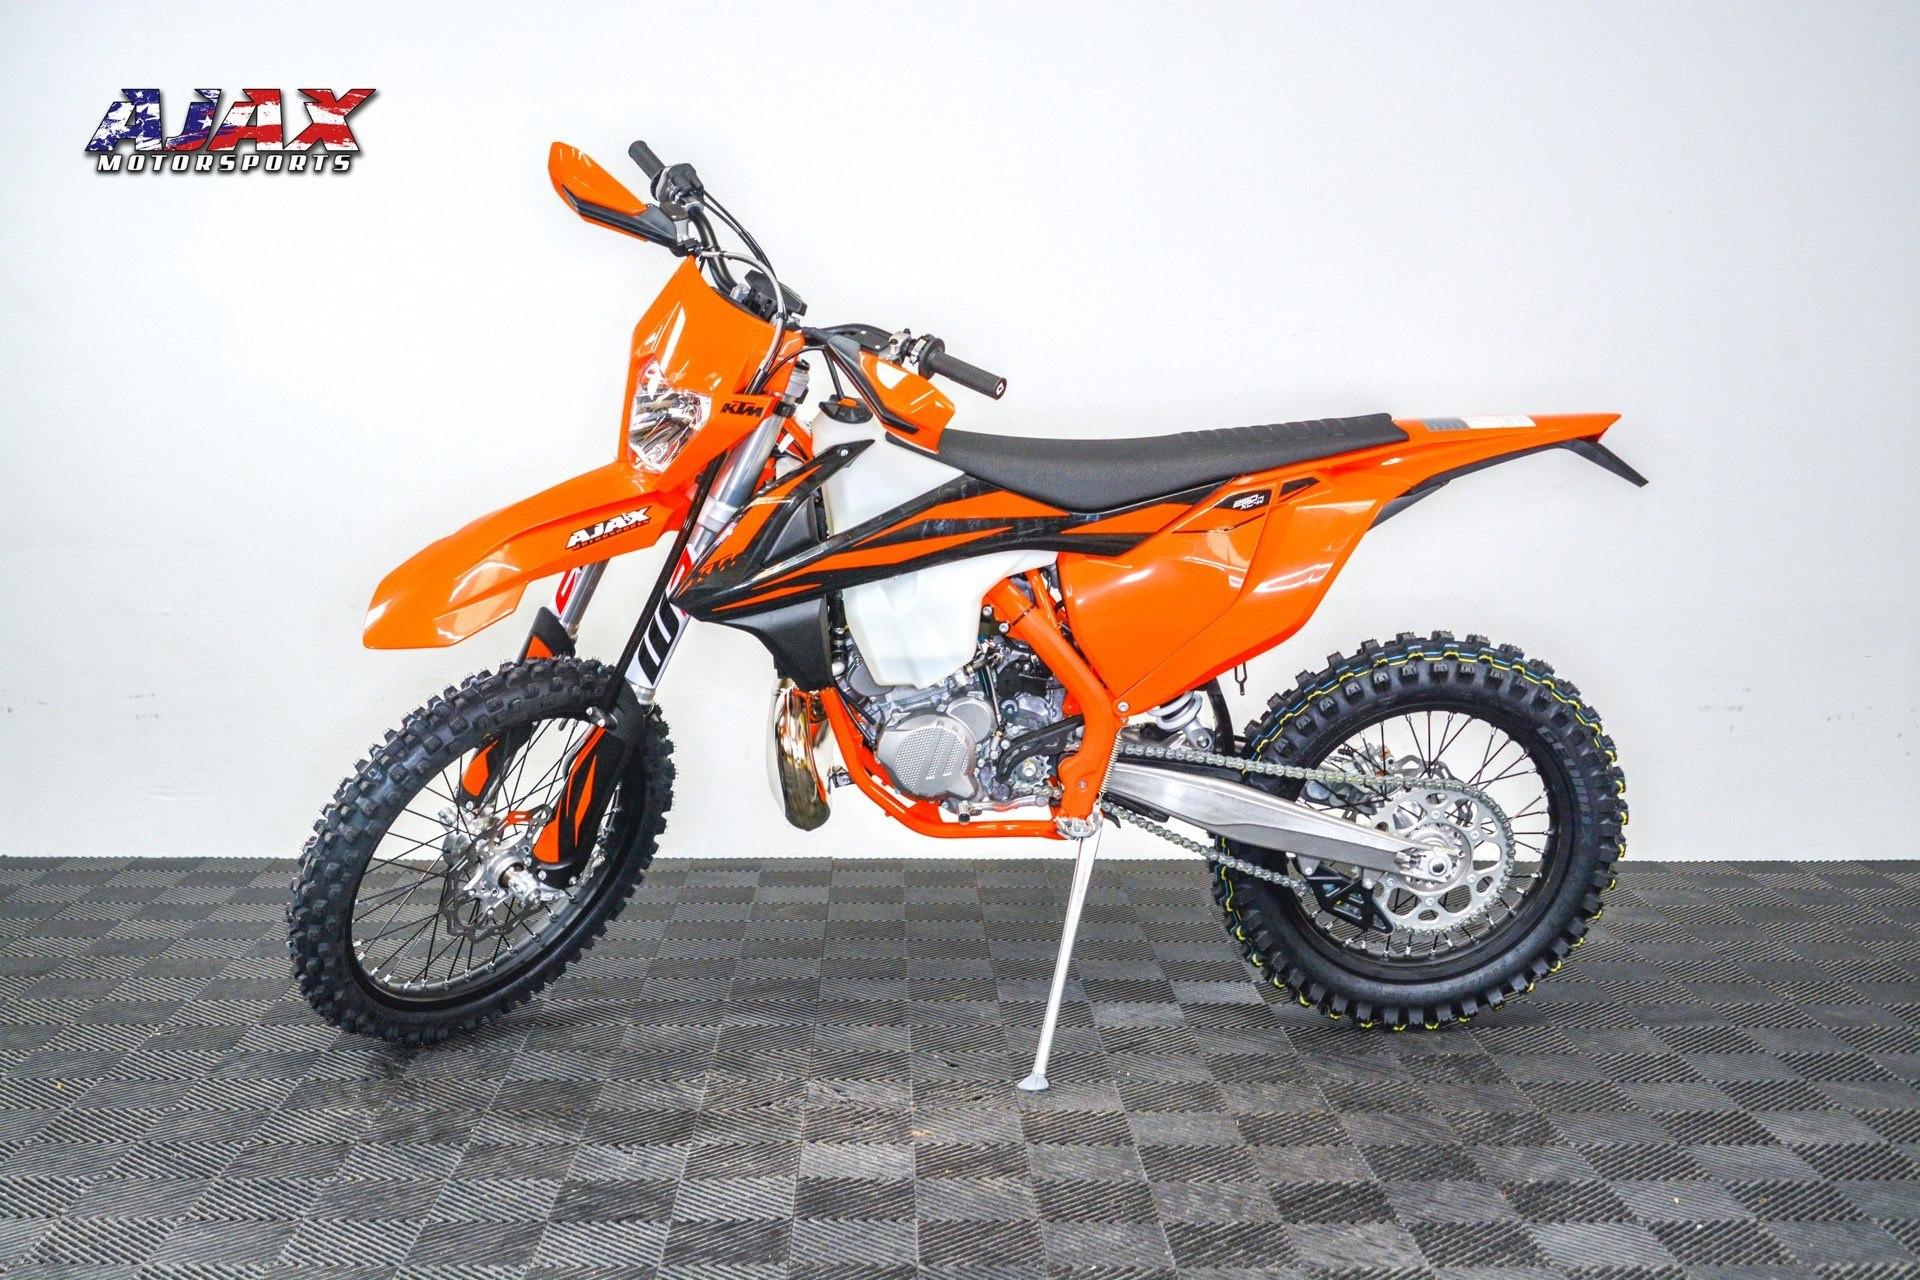 new 2019 ktm 250 xc w tpi motorcycles in oklahoma city ok. Black Bedroom Furniture Sets. Home Design Ideas